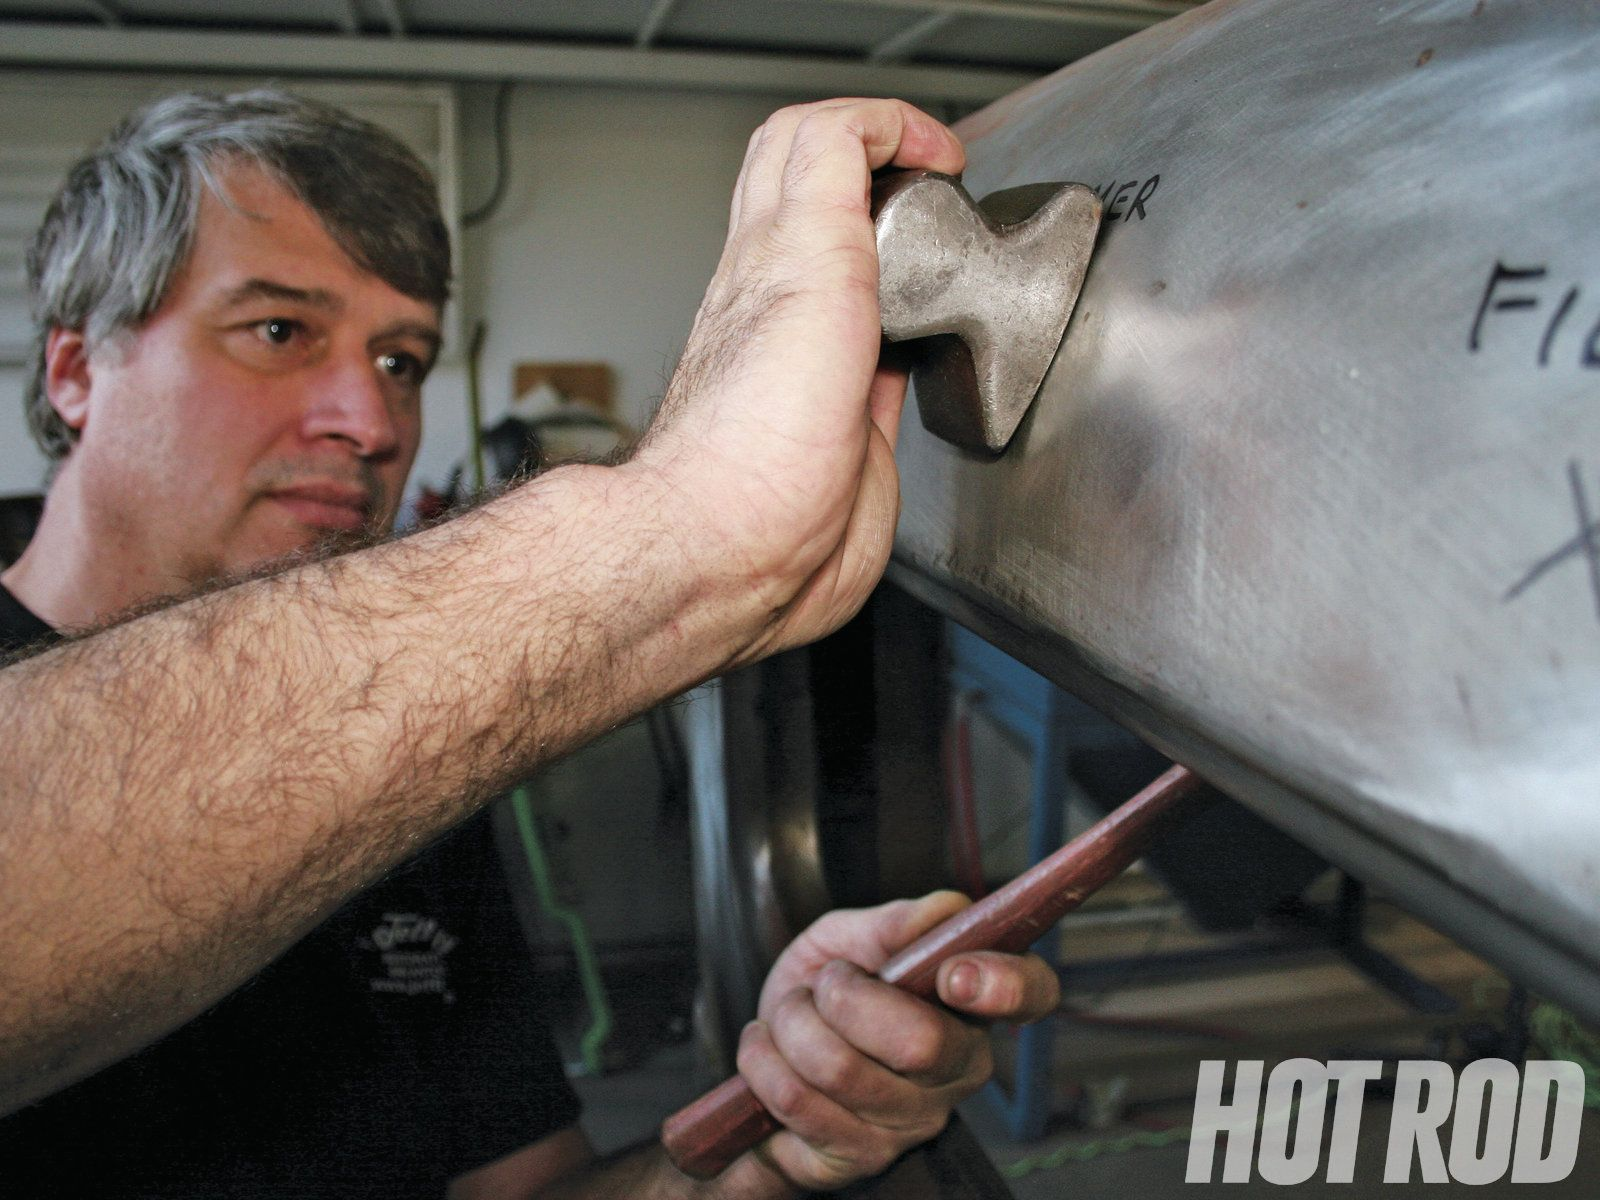 Diy auto body and paint tips photo 2 auto repair pinterest diy auto body and paint tips photo 2 solutioingenieria Gallery